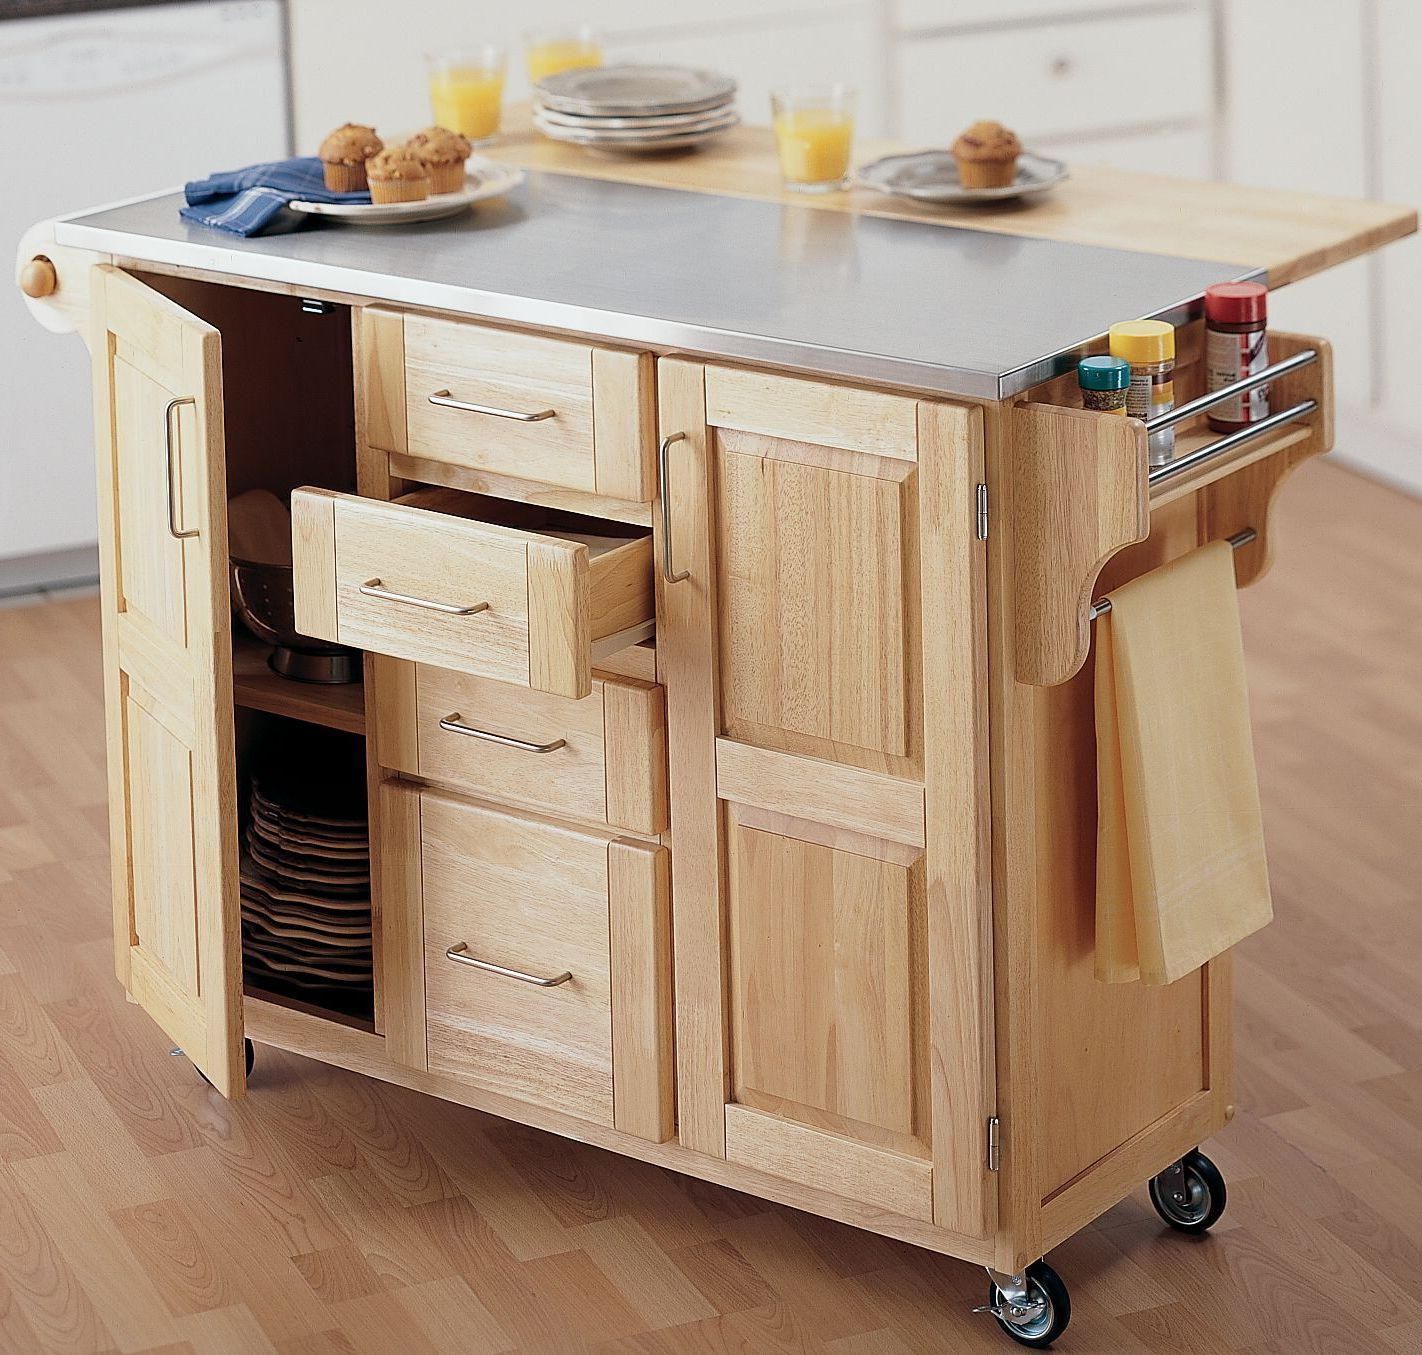 Ikea Portable Kitchen Island With Seating: Movable Kitchen Island Duration Diy And Extend Your Island